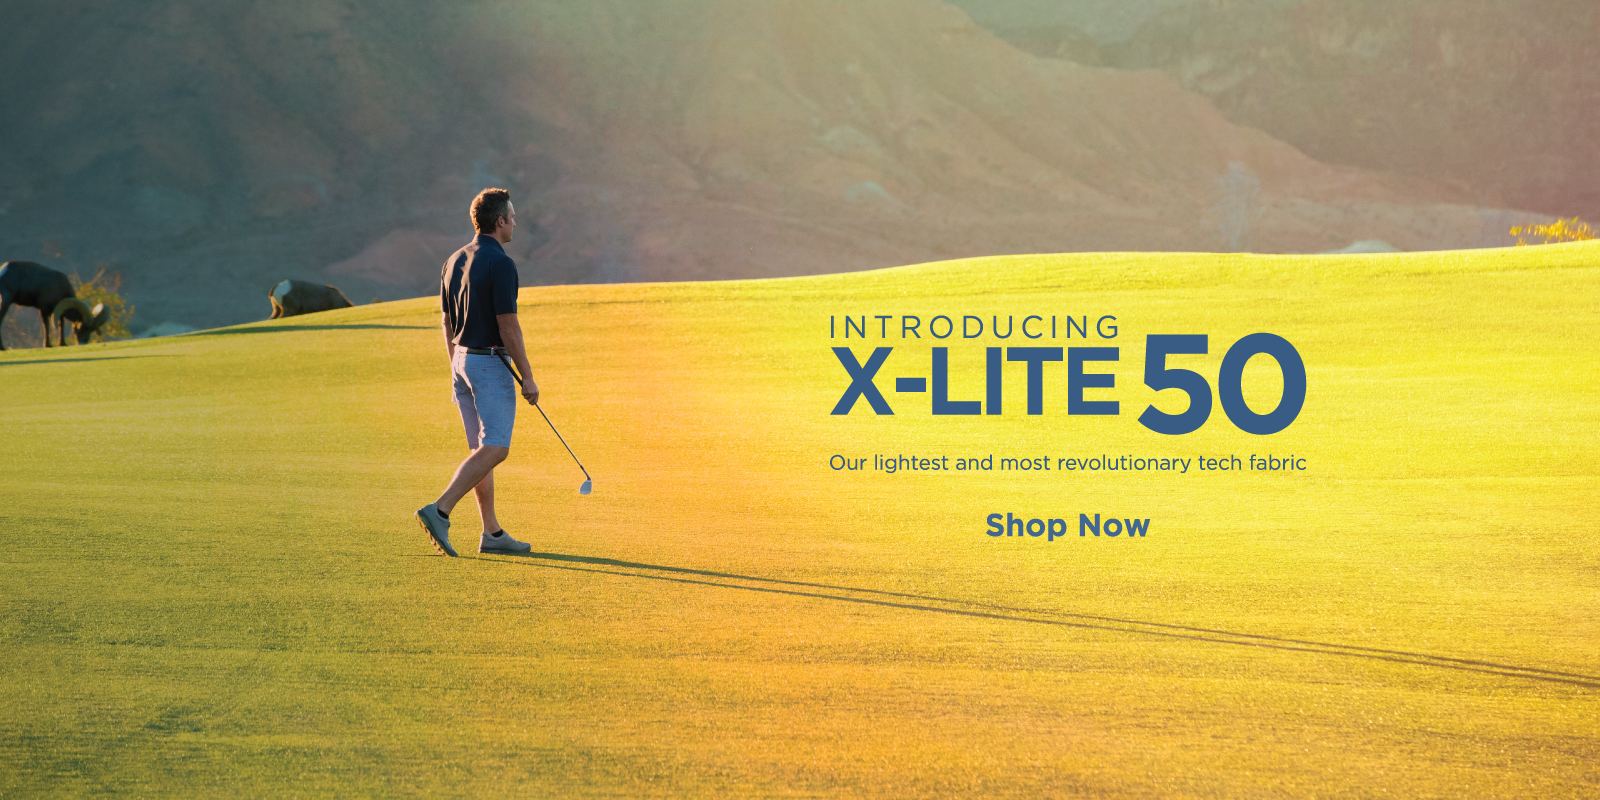 Introducing X-lite 50 our lightest and most revolutionary tech fabric shop now